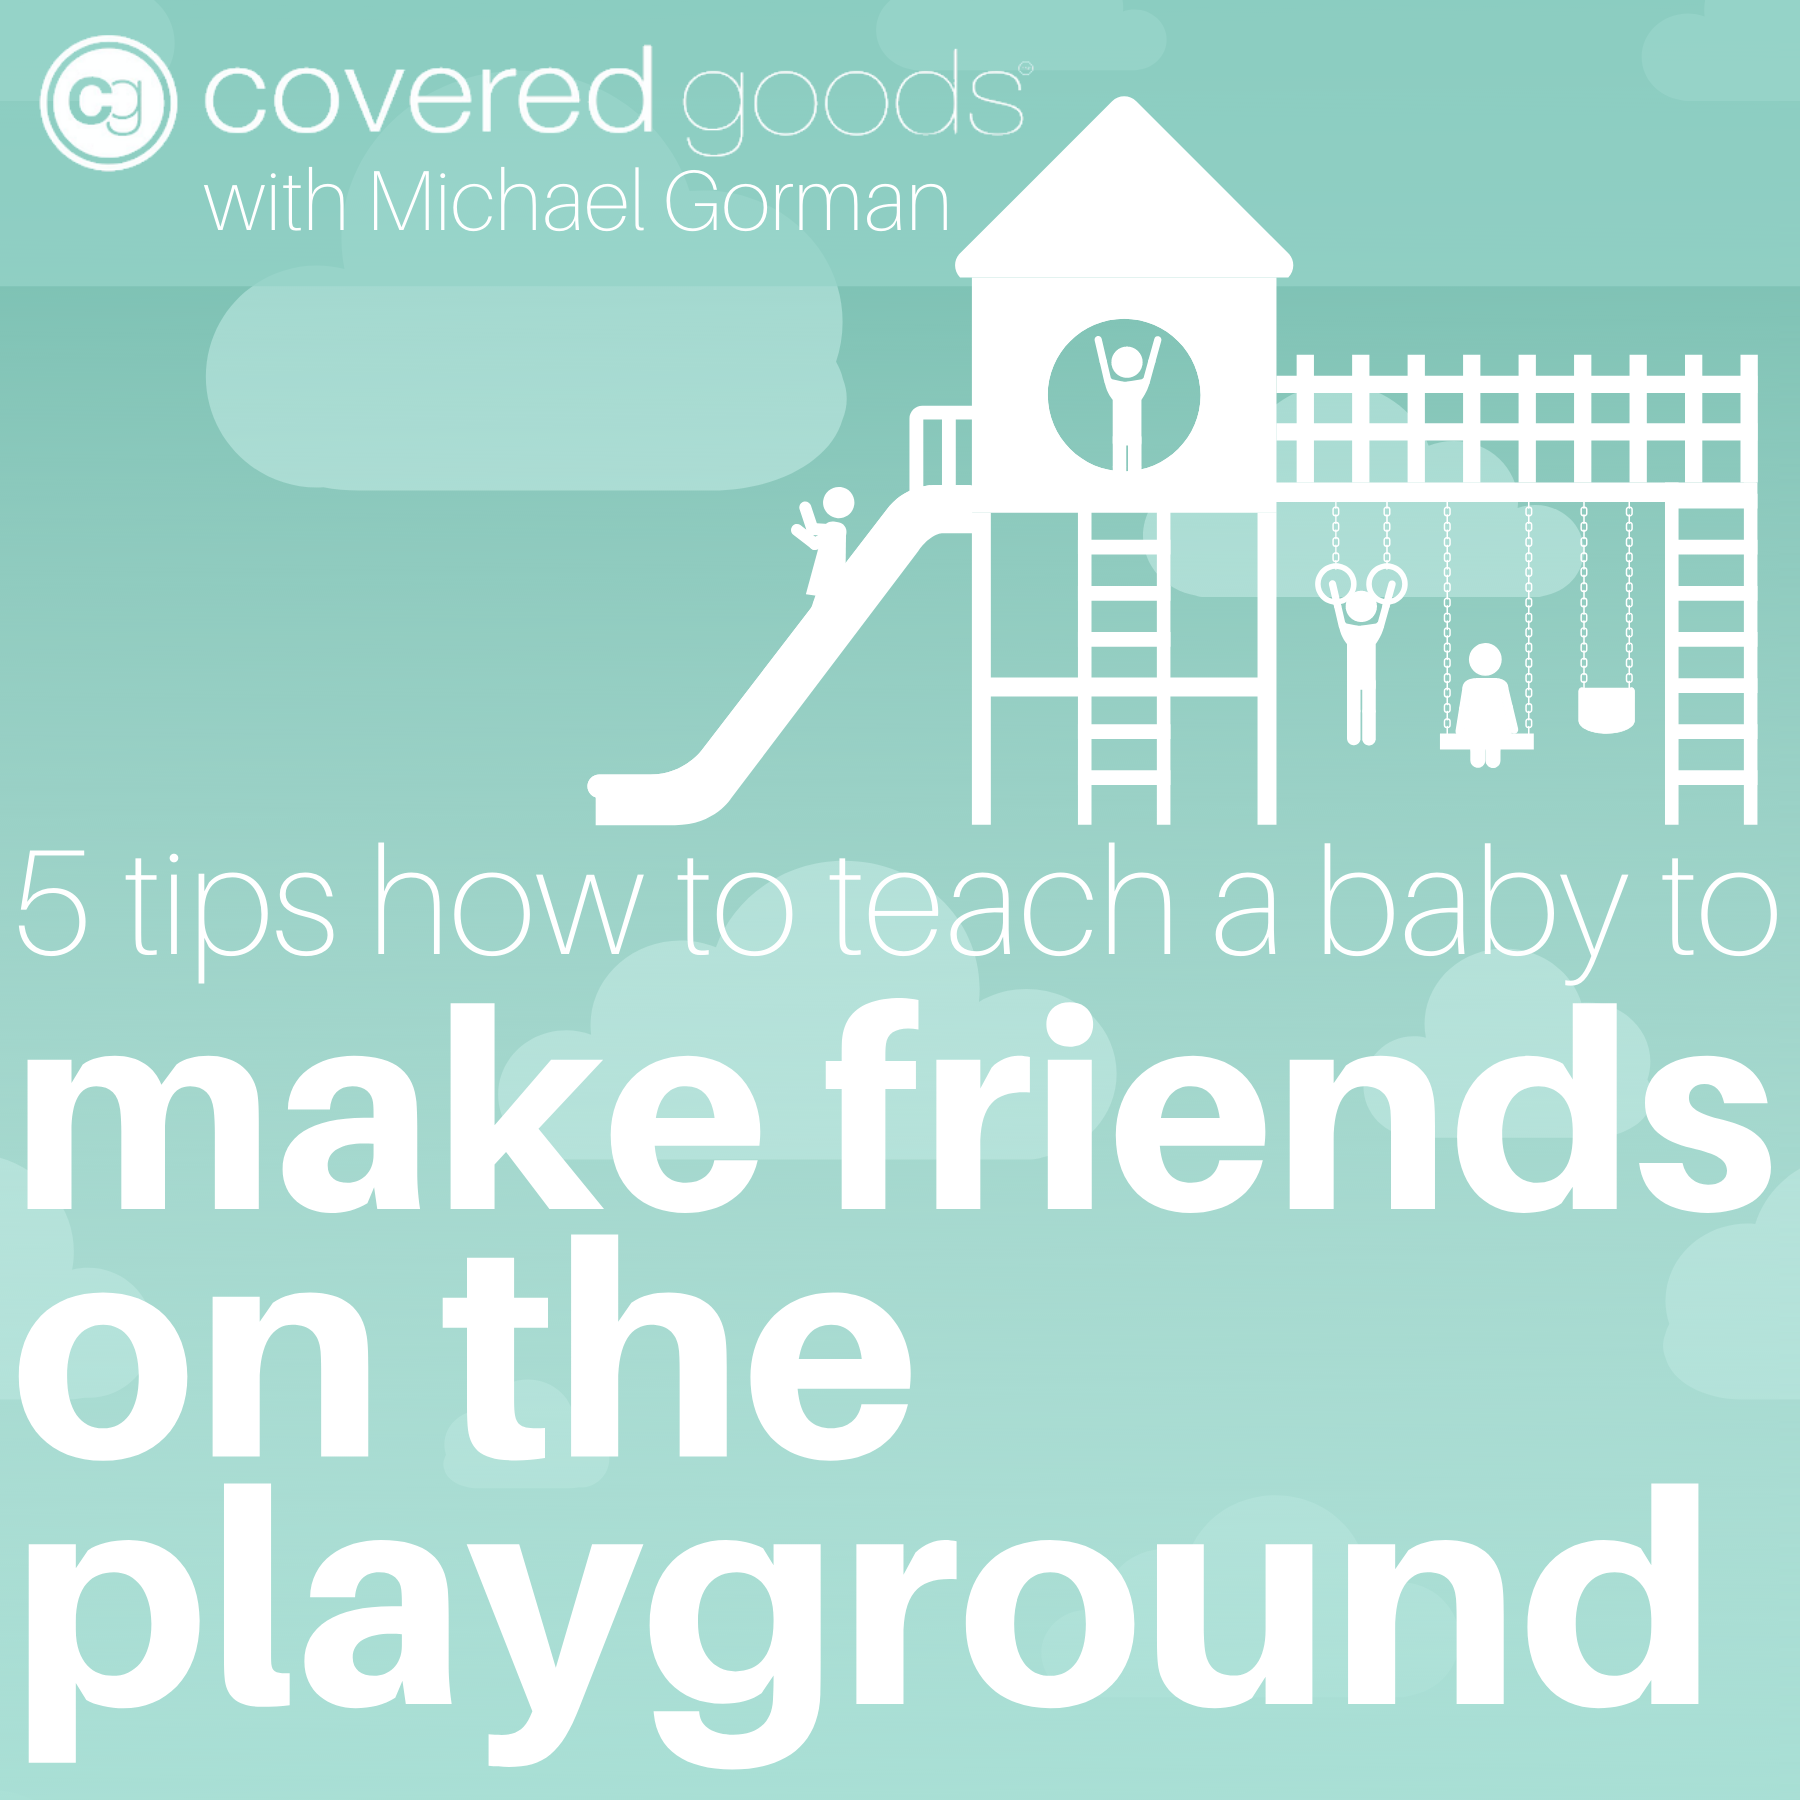 5 Tips How to Teach a Baby to Make Friends on the Playground